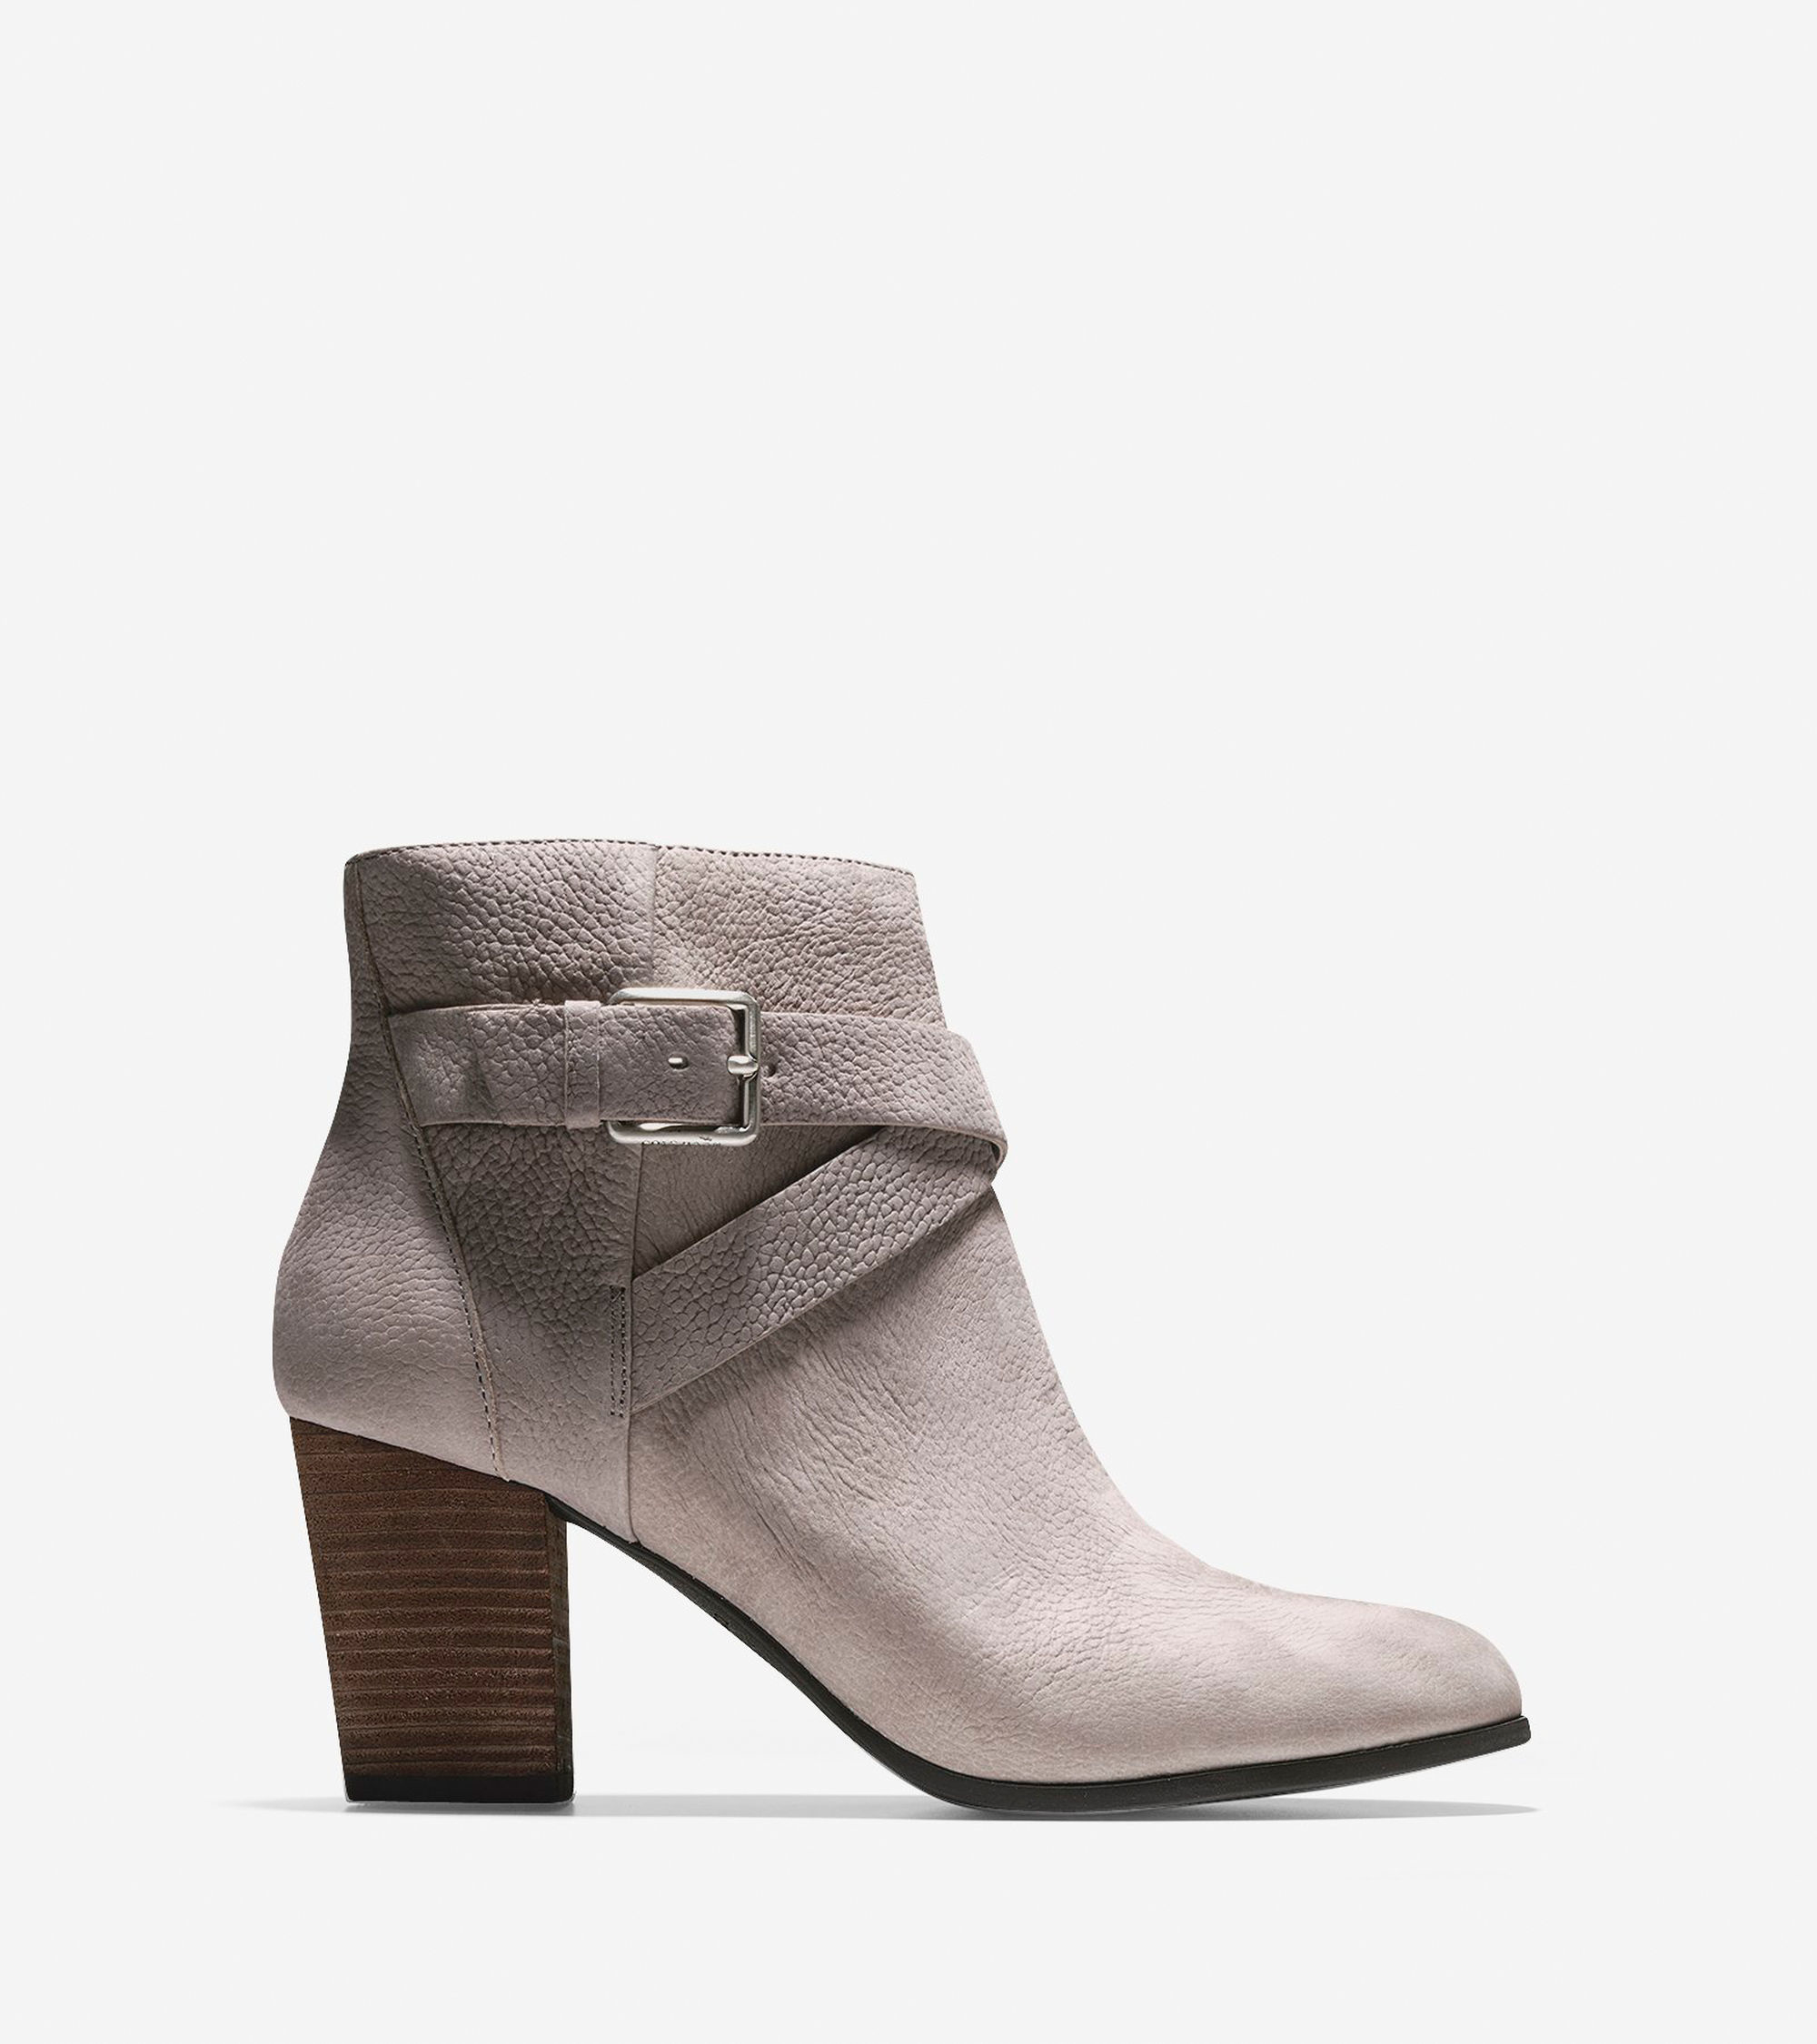 cole haan shoes taupe women's boots 718037